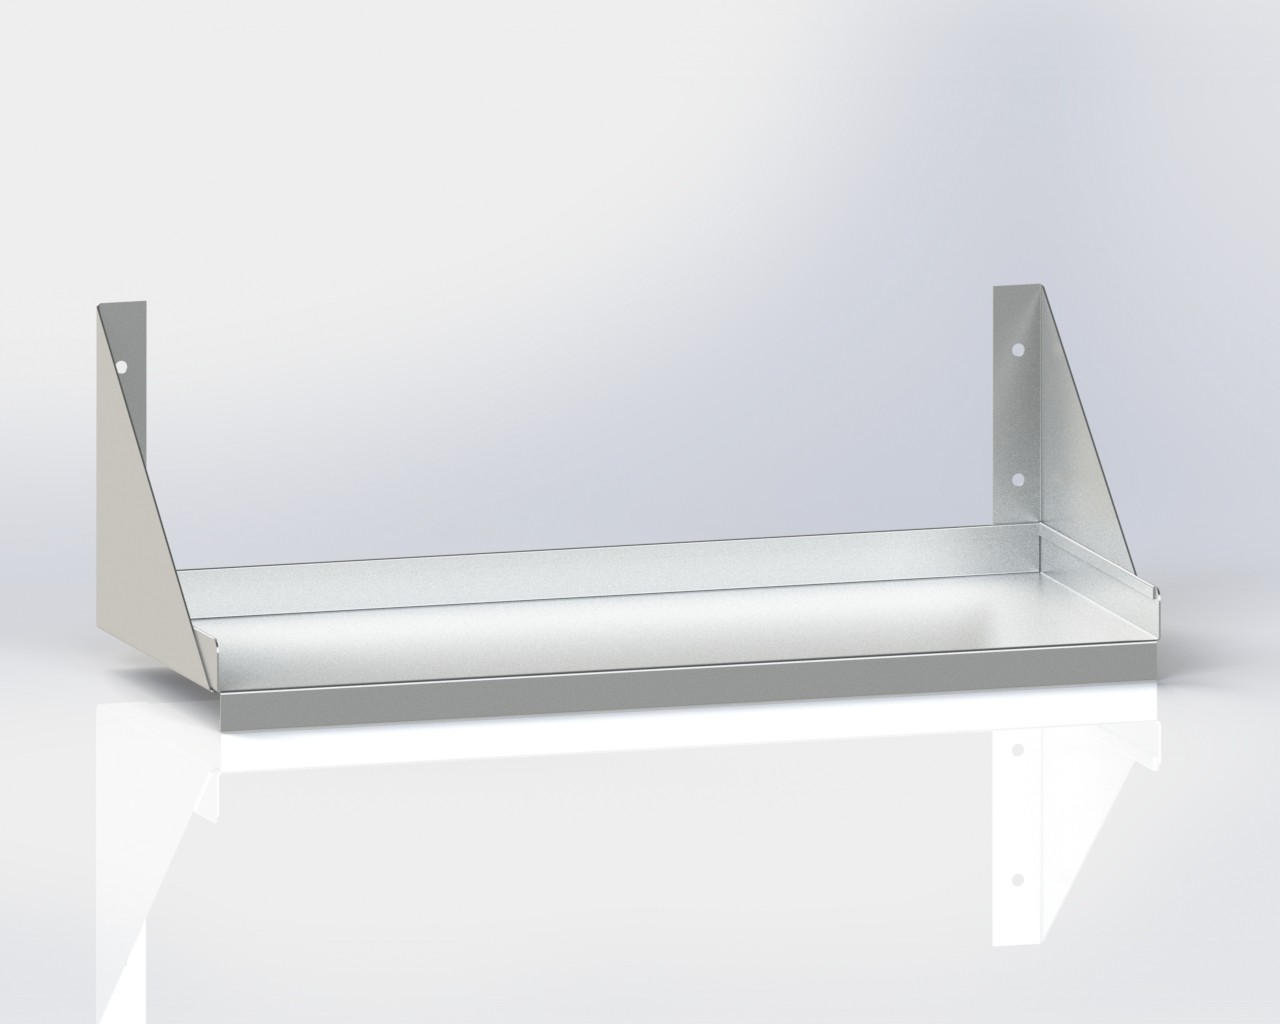 Wall Mounted Shelf /Below Bracket